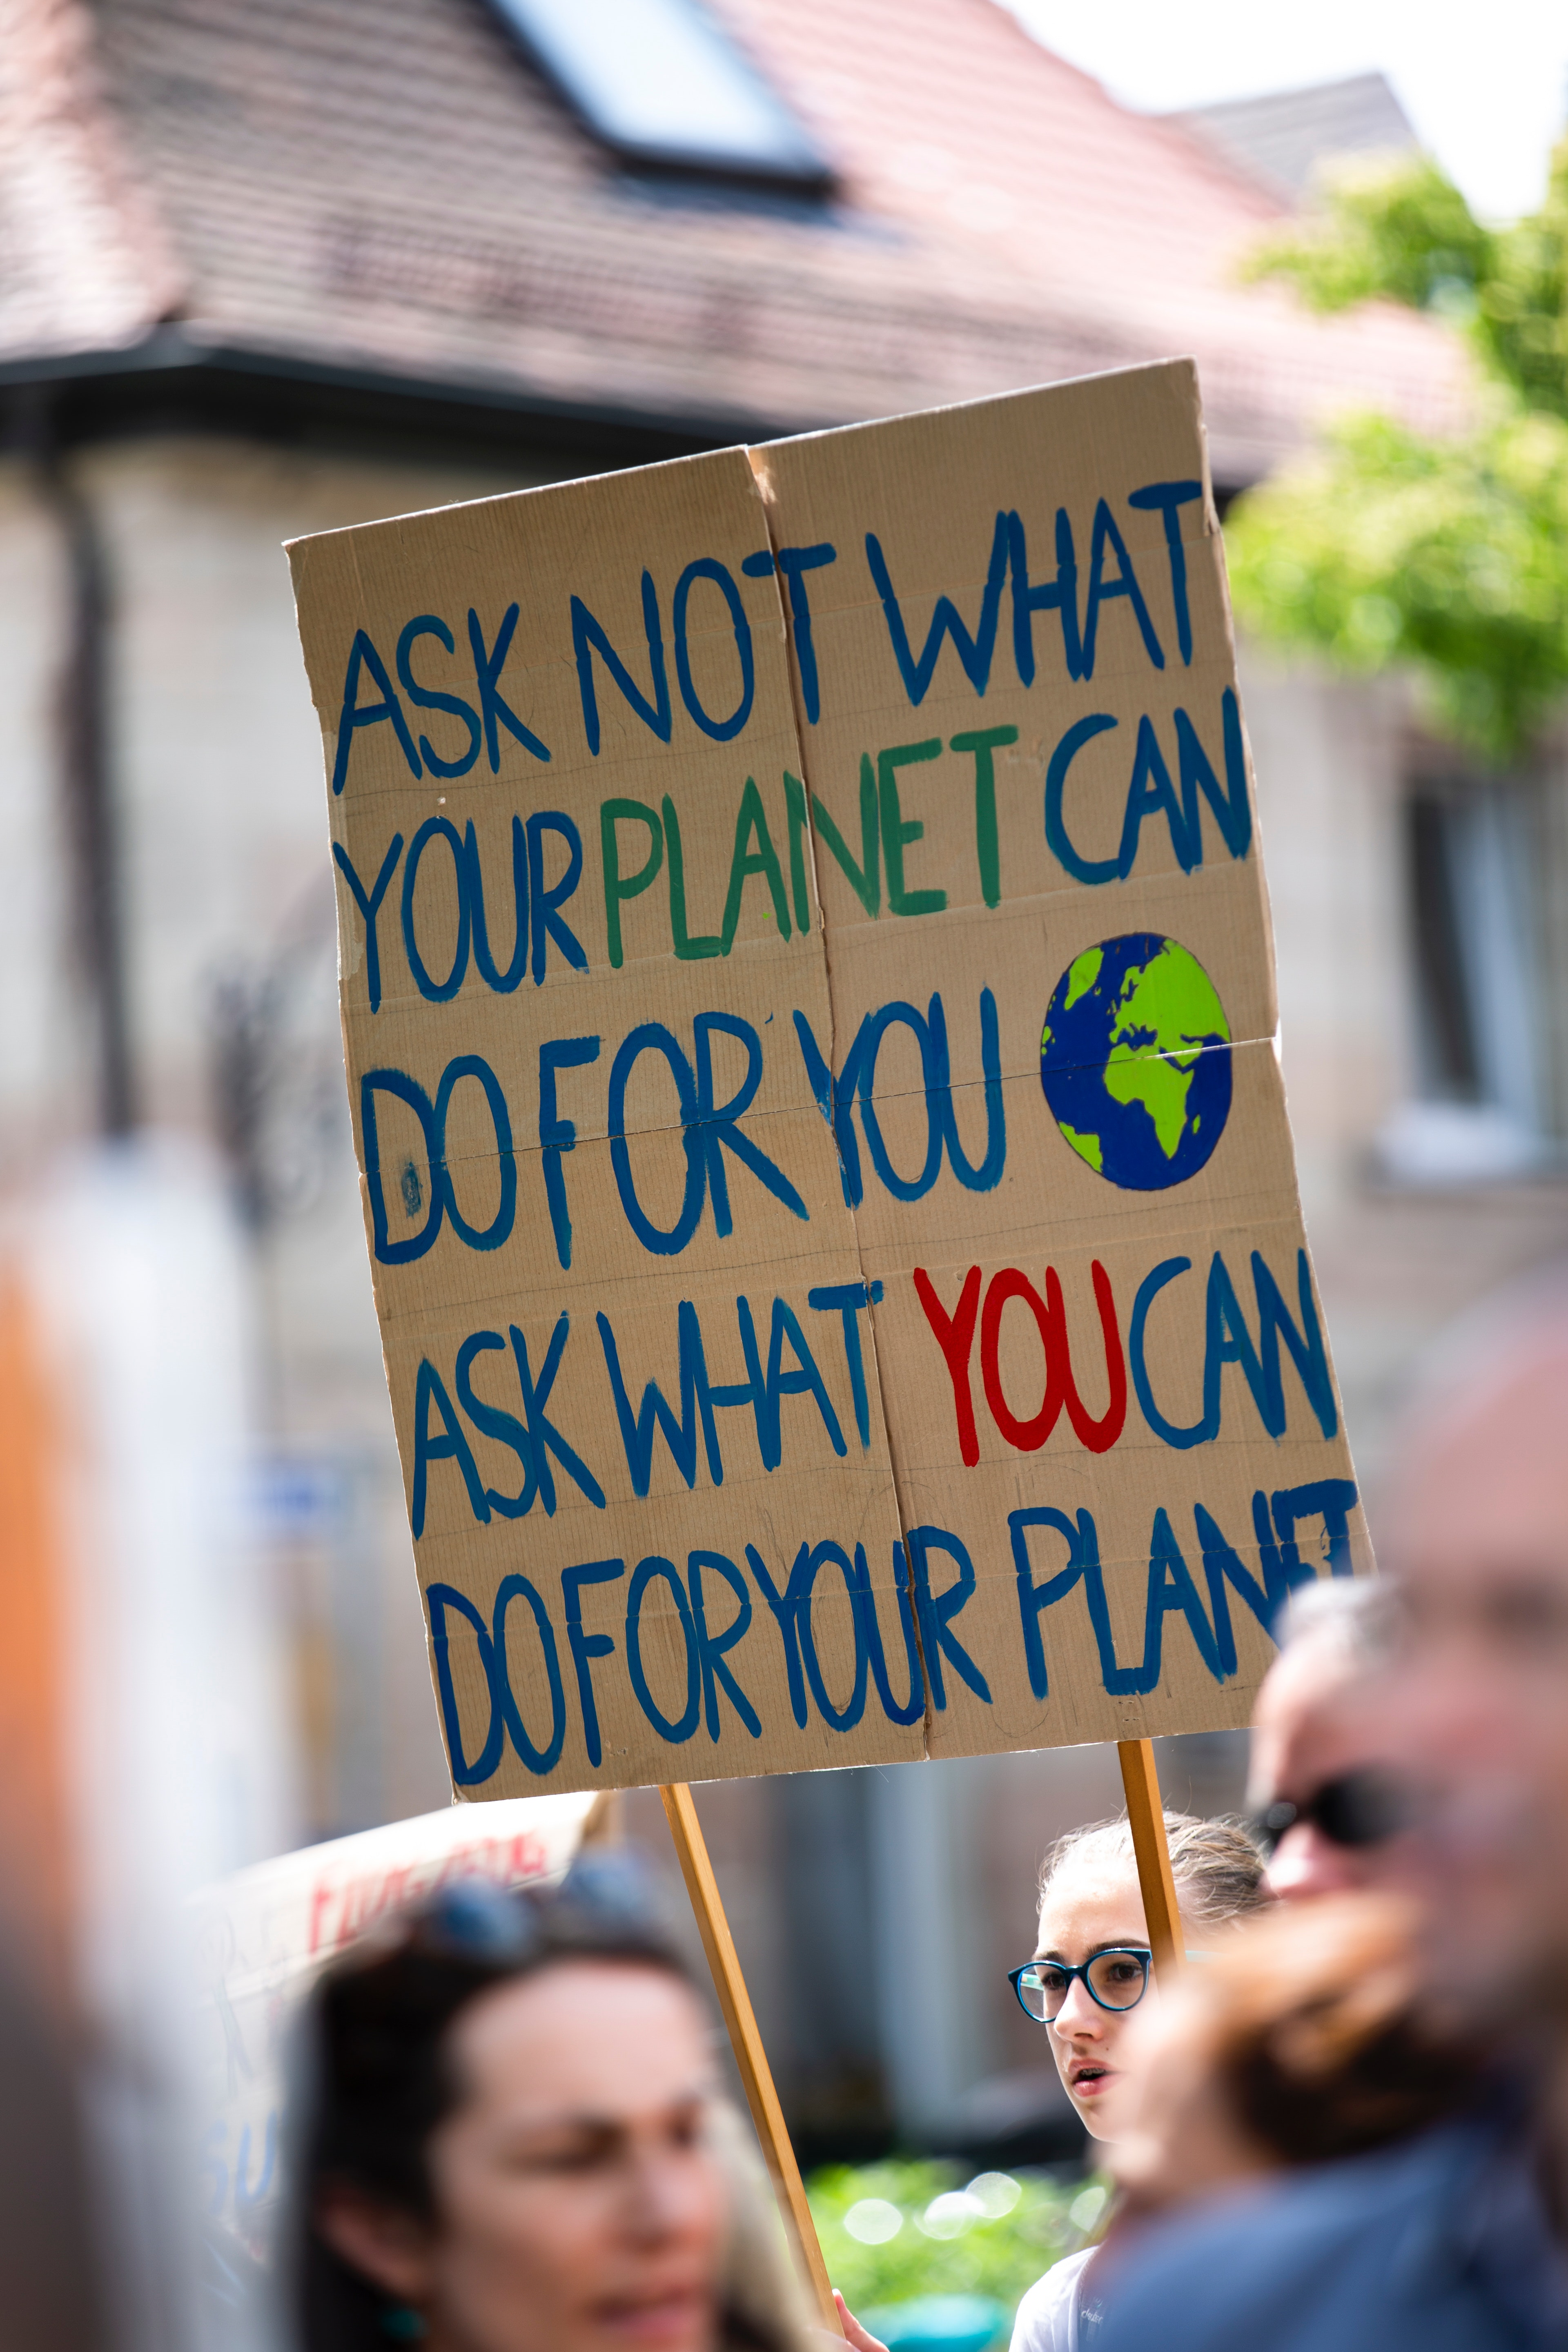 Ask what you can do for your planet